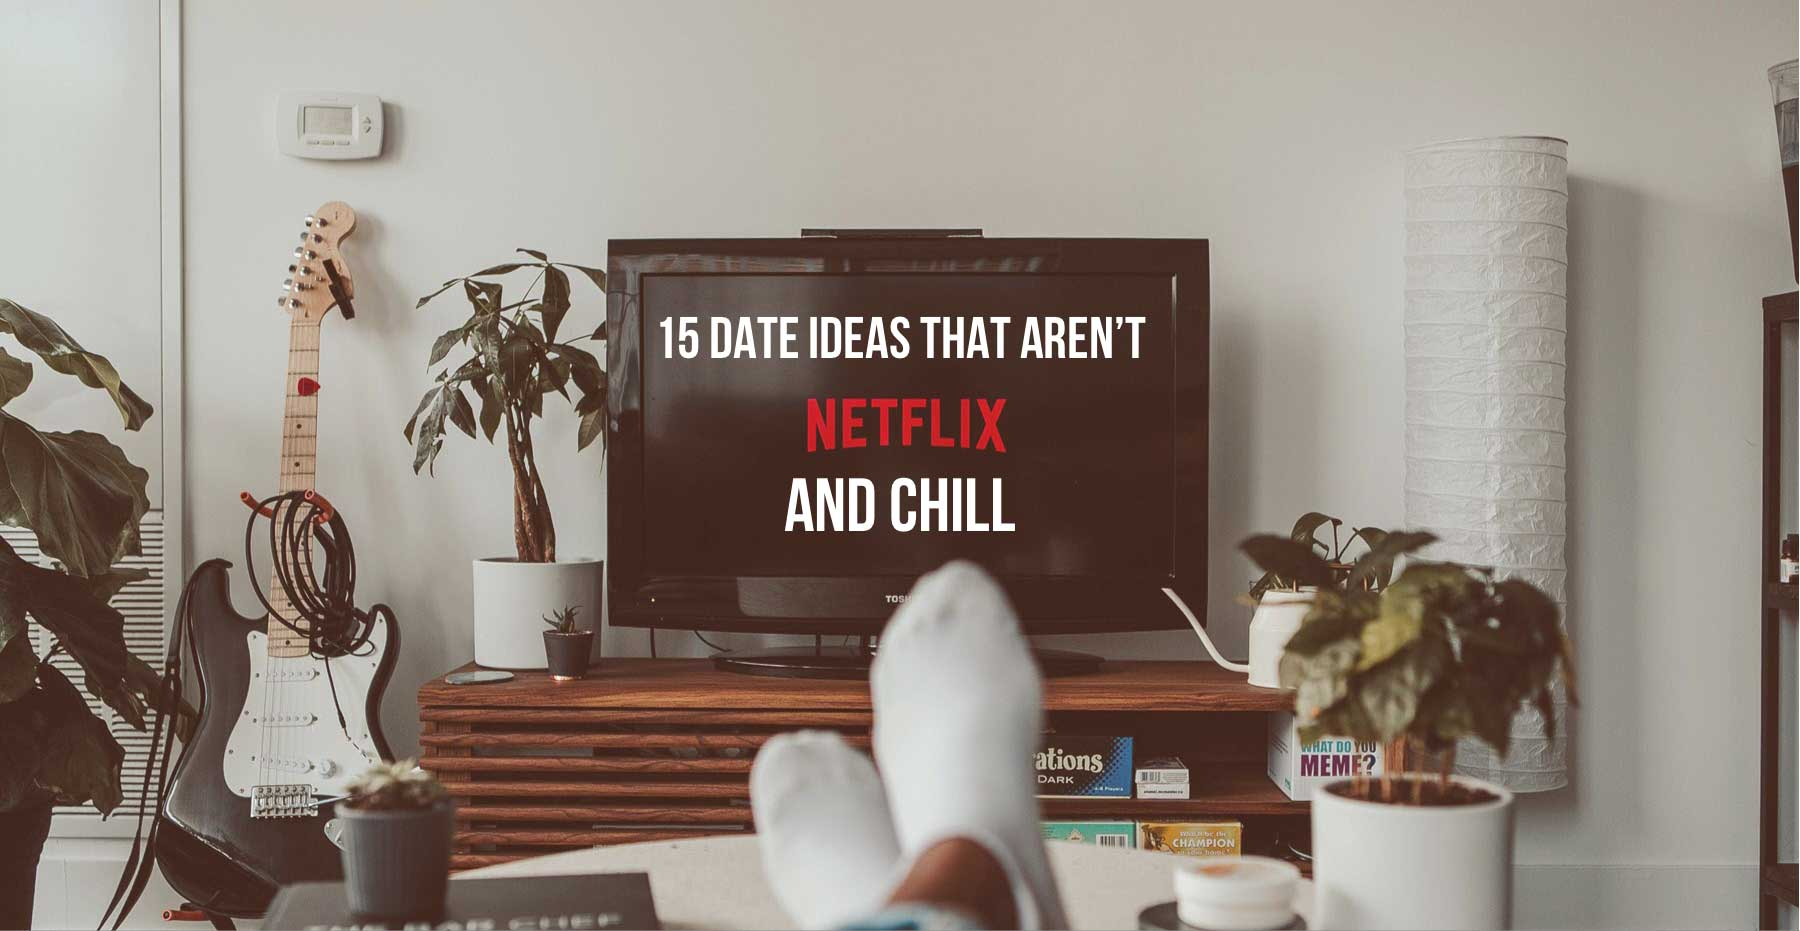 15-Date-Ideas-That-Aren't-Netflix-and-Chill-TheHopeLine